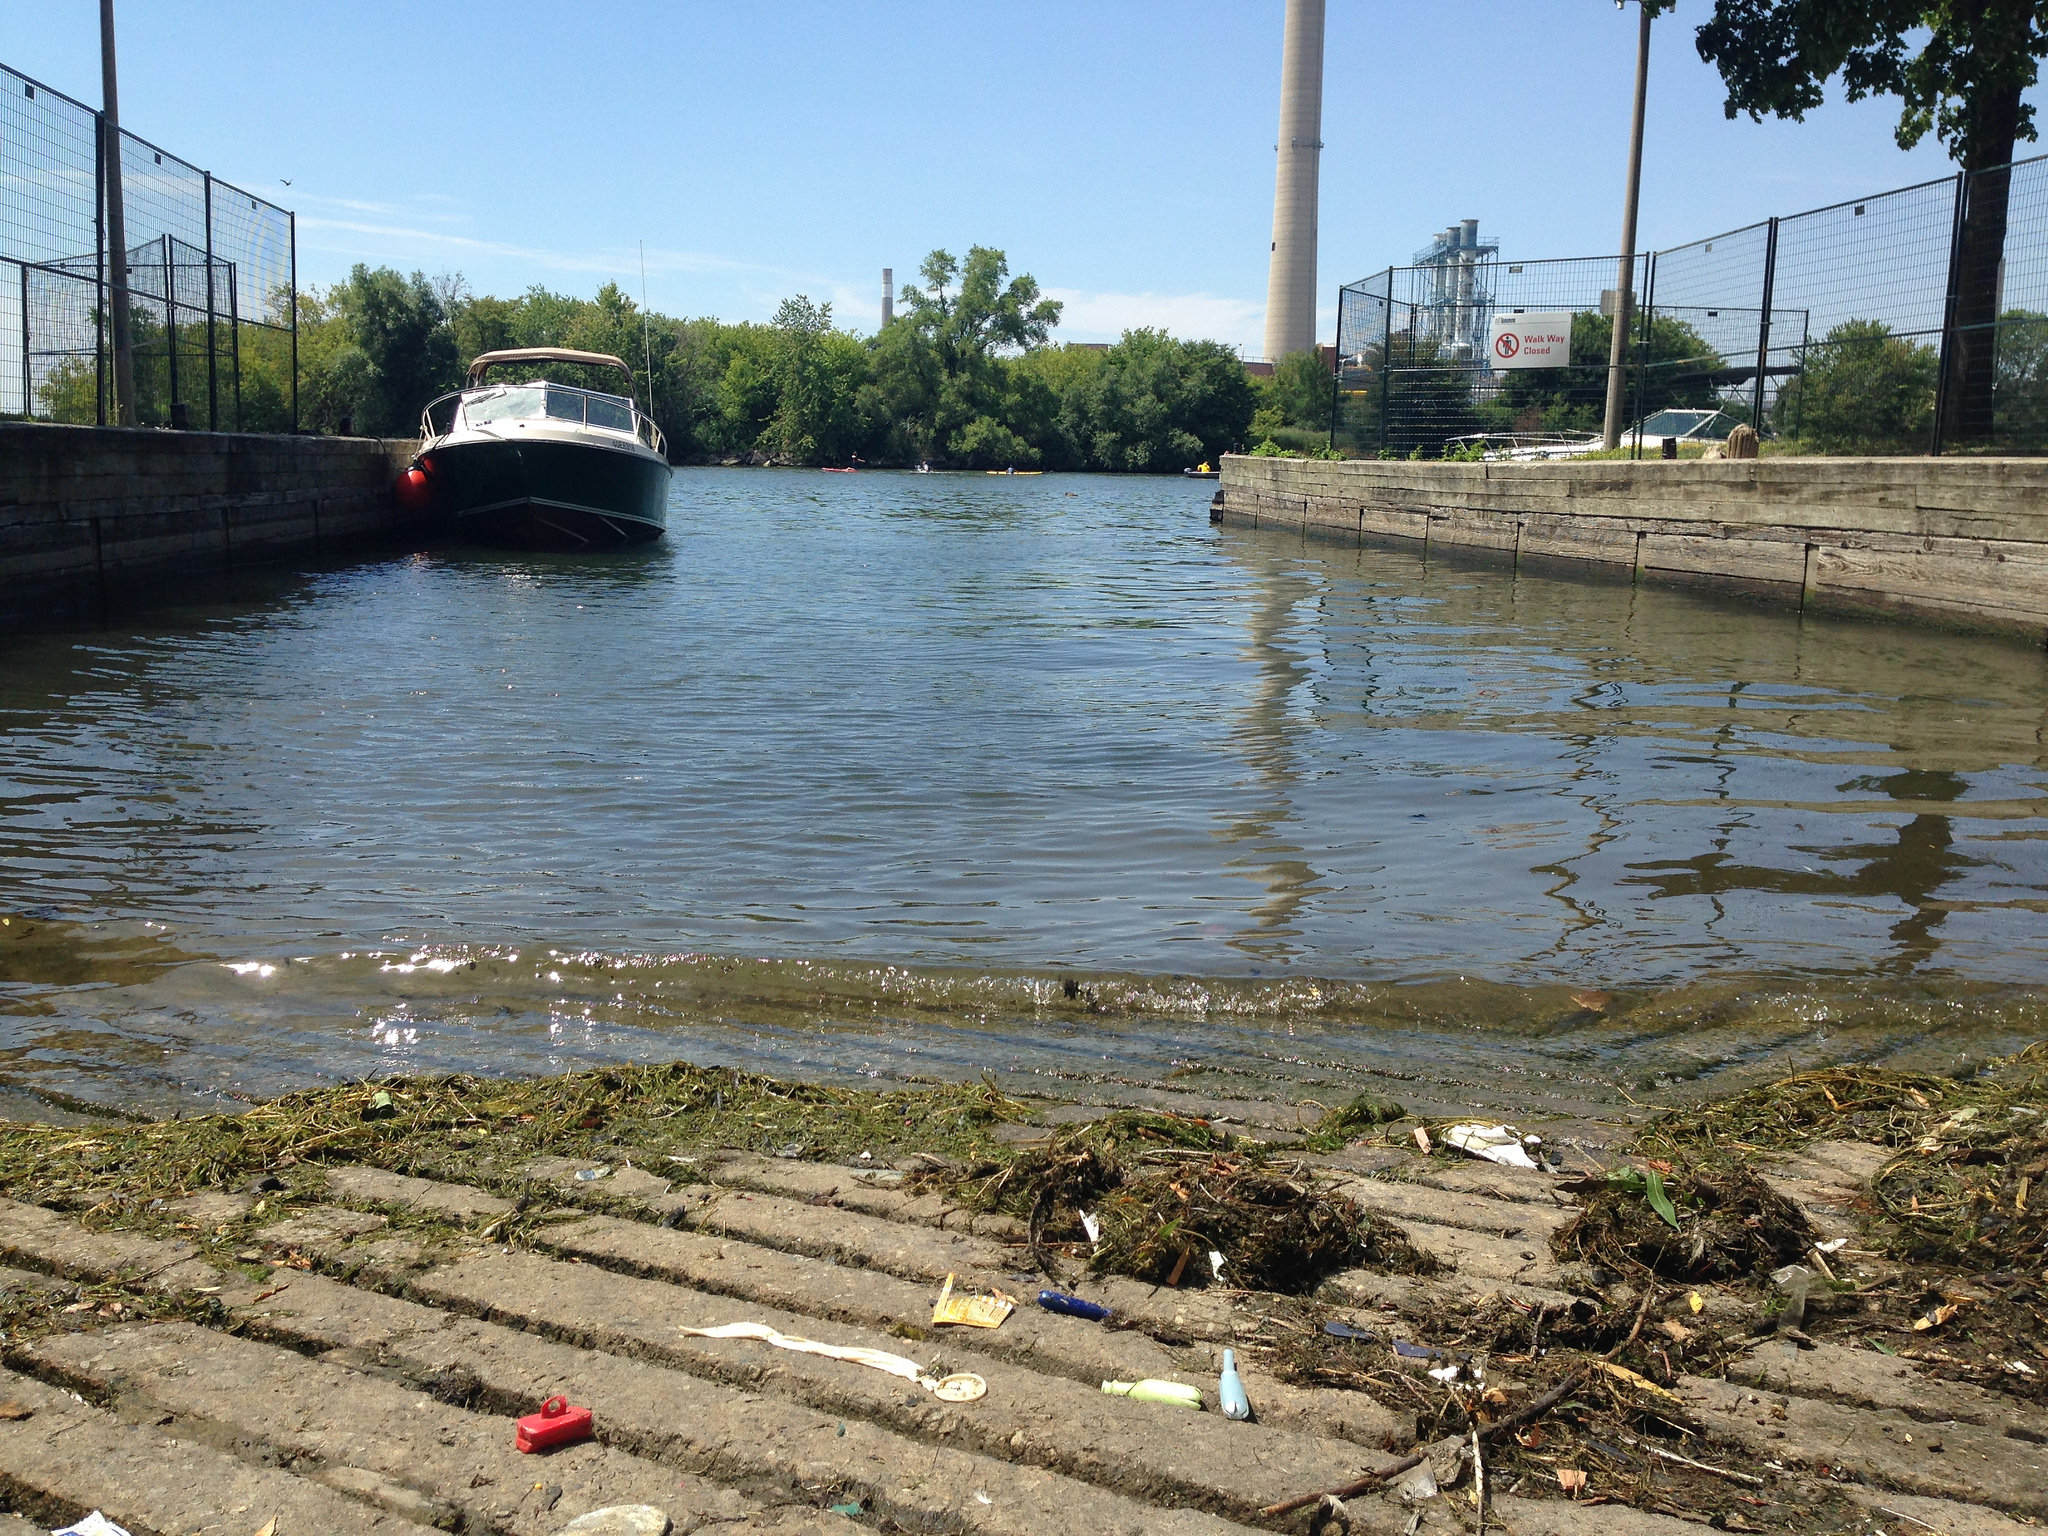 Sewage debris (such as condoms and tampon applicators)found at a boat launch.The smokestack from Ashbridges Wastewater Treatment Facility can be seen in the background. (Photo by Claire Lawson)